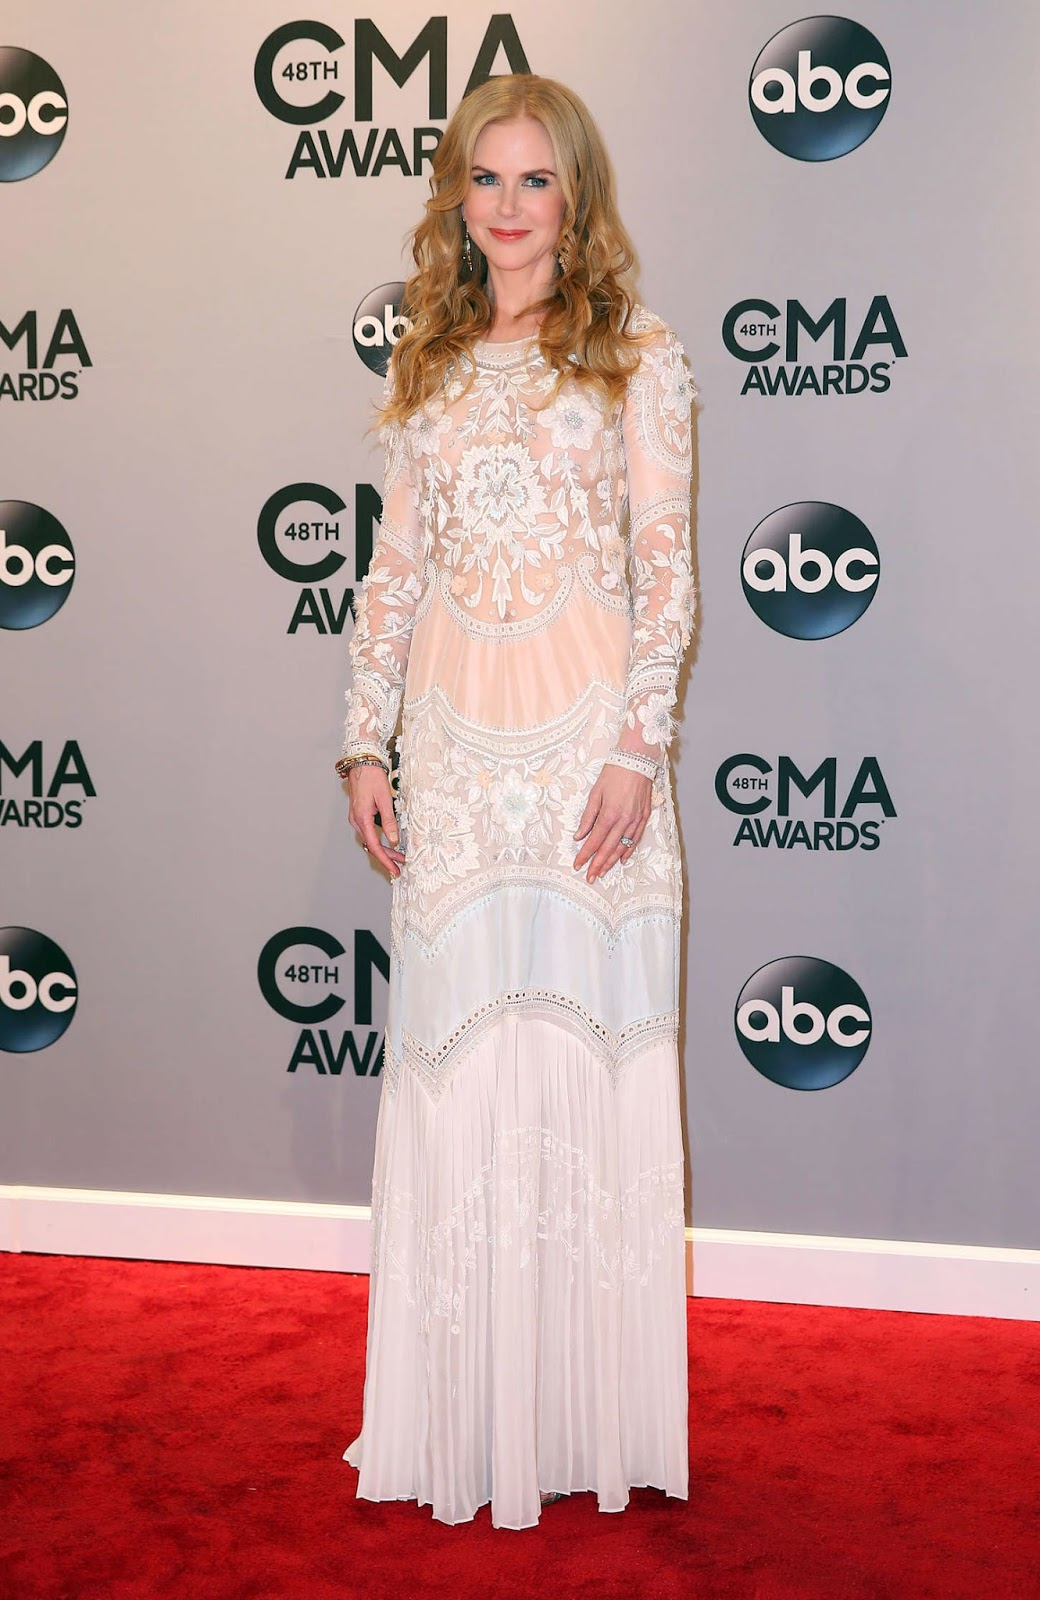 Nicole Kidman - Best Dressed Celebrities at the 2014 Annual CMA Awards in Nashville